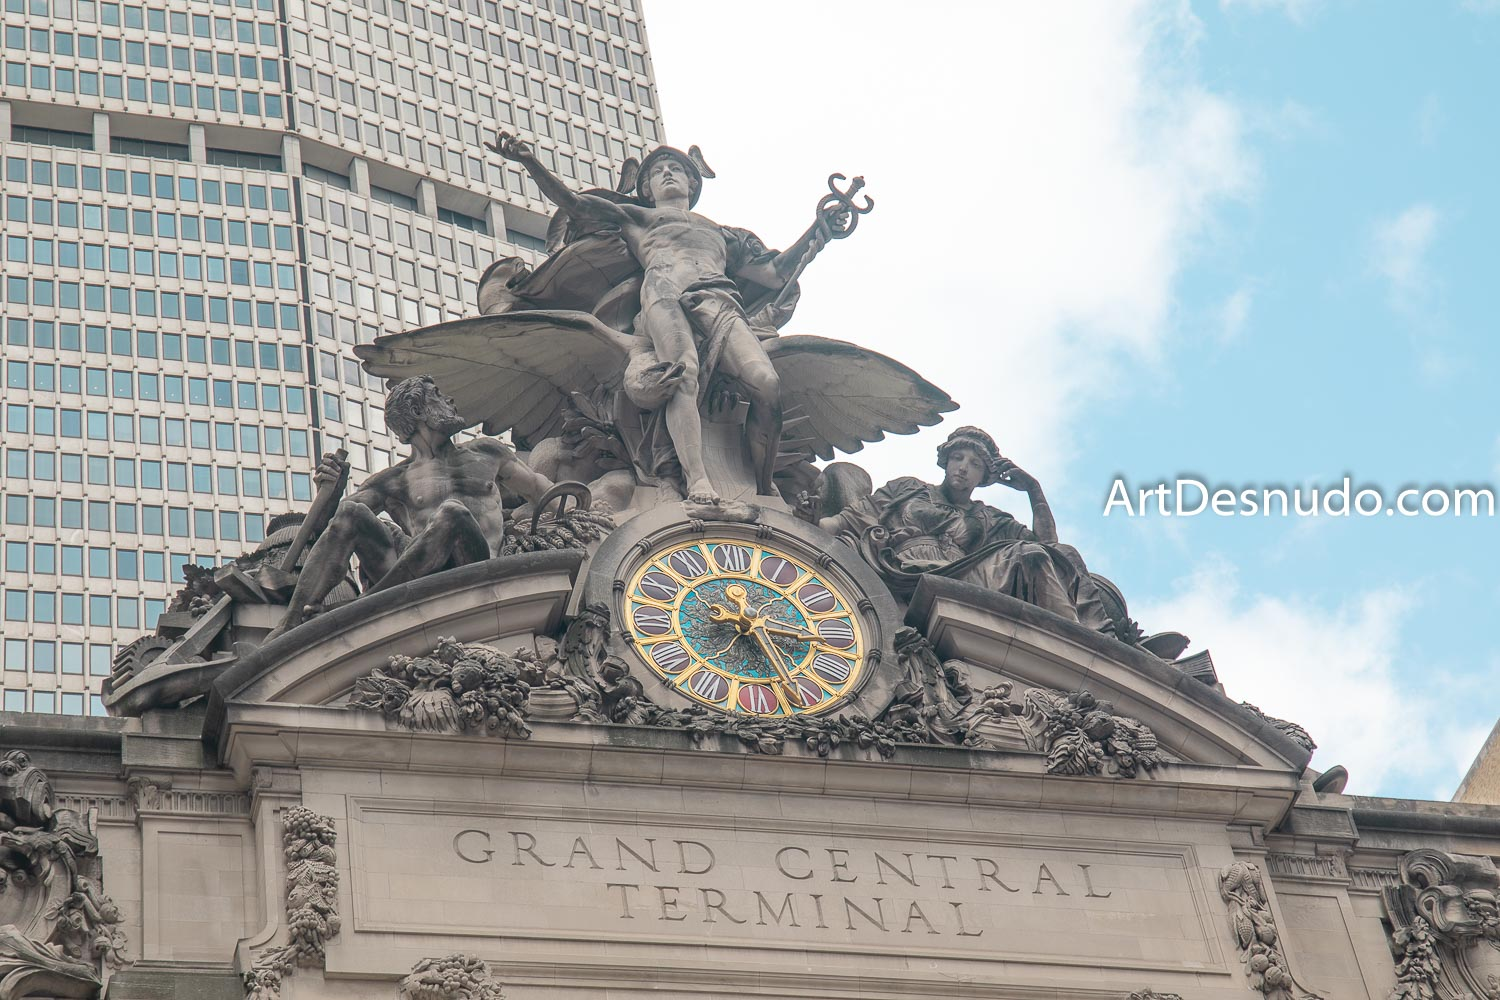 Saturday, September 7, 2019 - The Glory of Commerce sculpture. Grand Central Terminal. New York City.